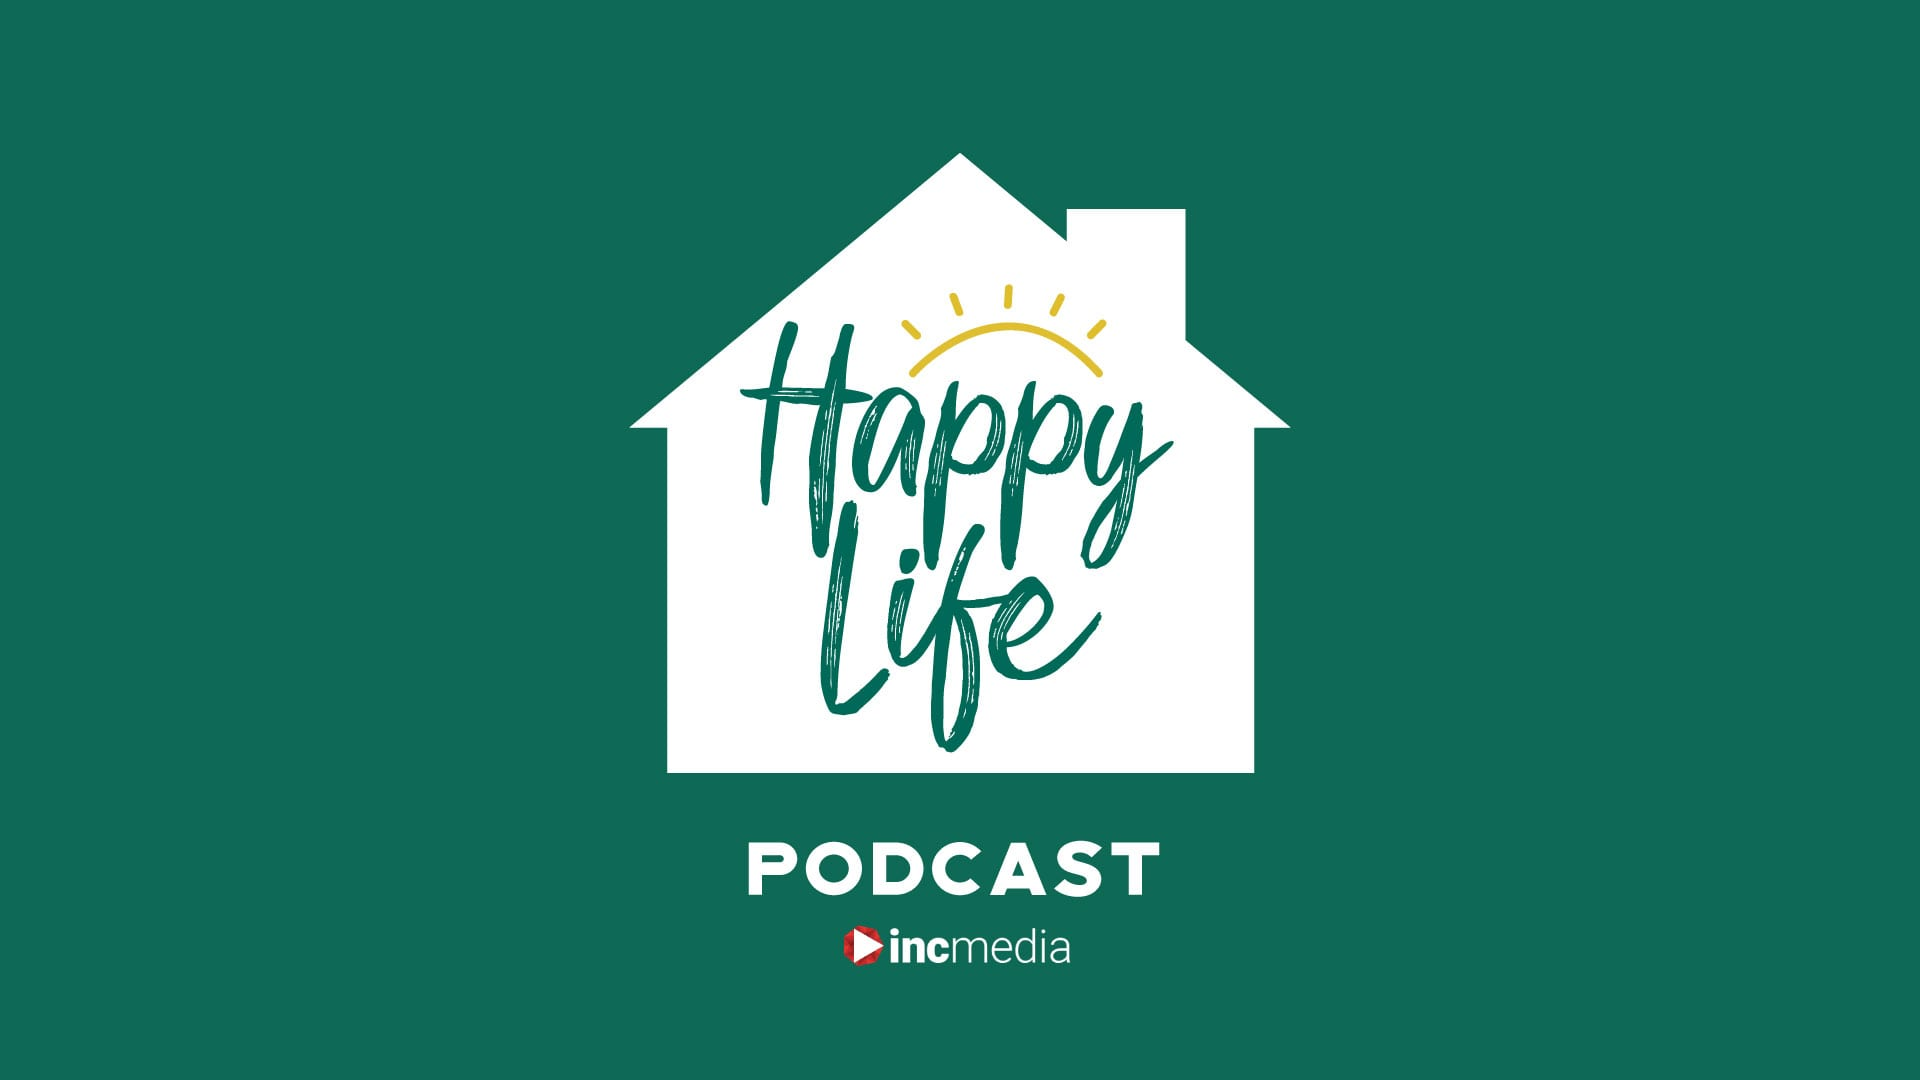 A graphic of a white house with the text happy life and a ray of sunshine above the word happy, and the word podcast beneath the house.